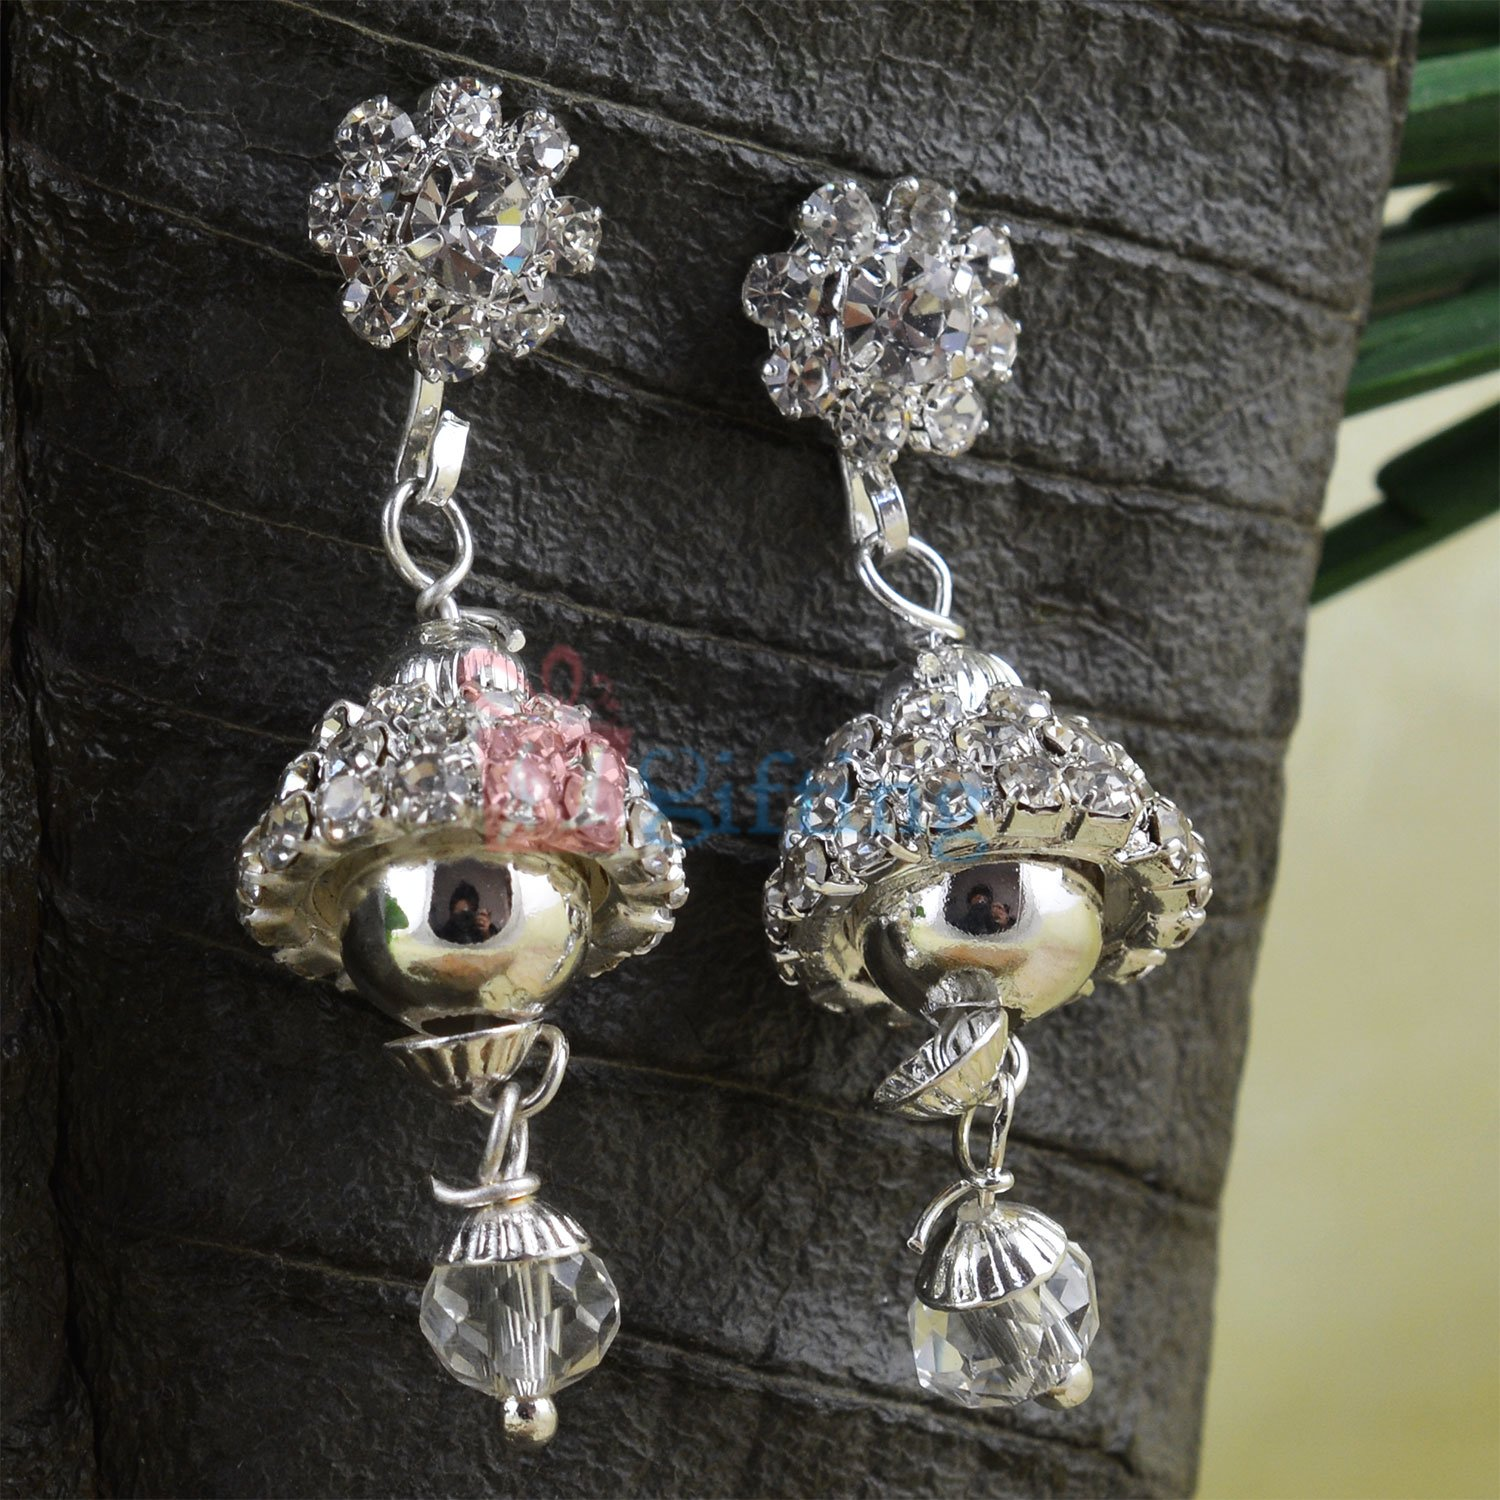 Amazing Silver Diamond Beads Jhumar Style Fancy Earrings